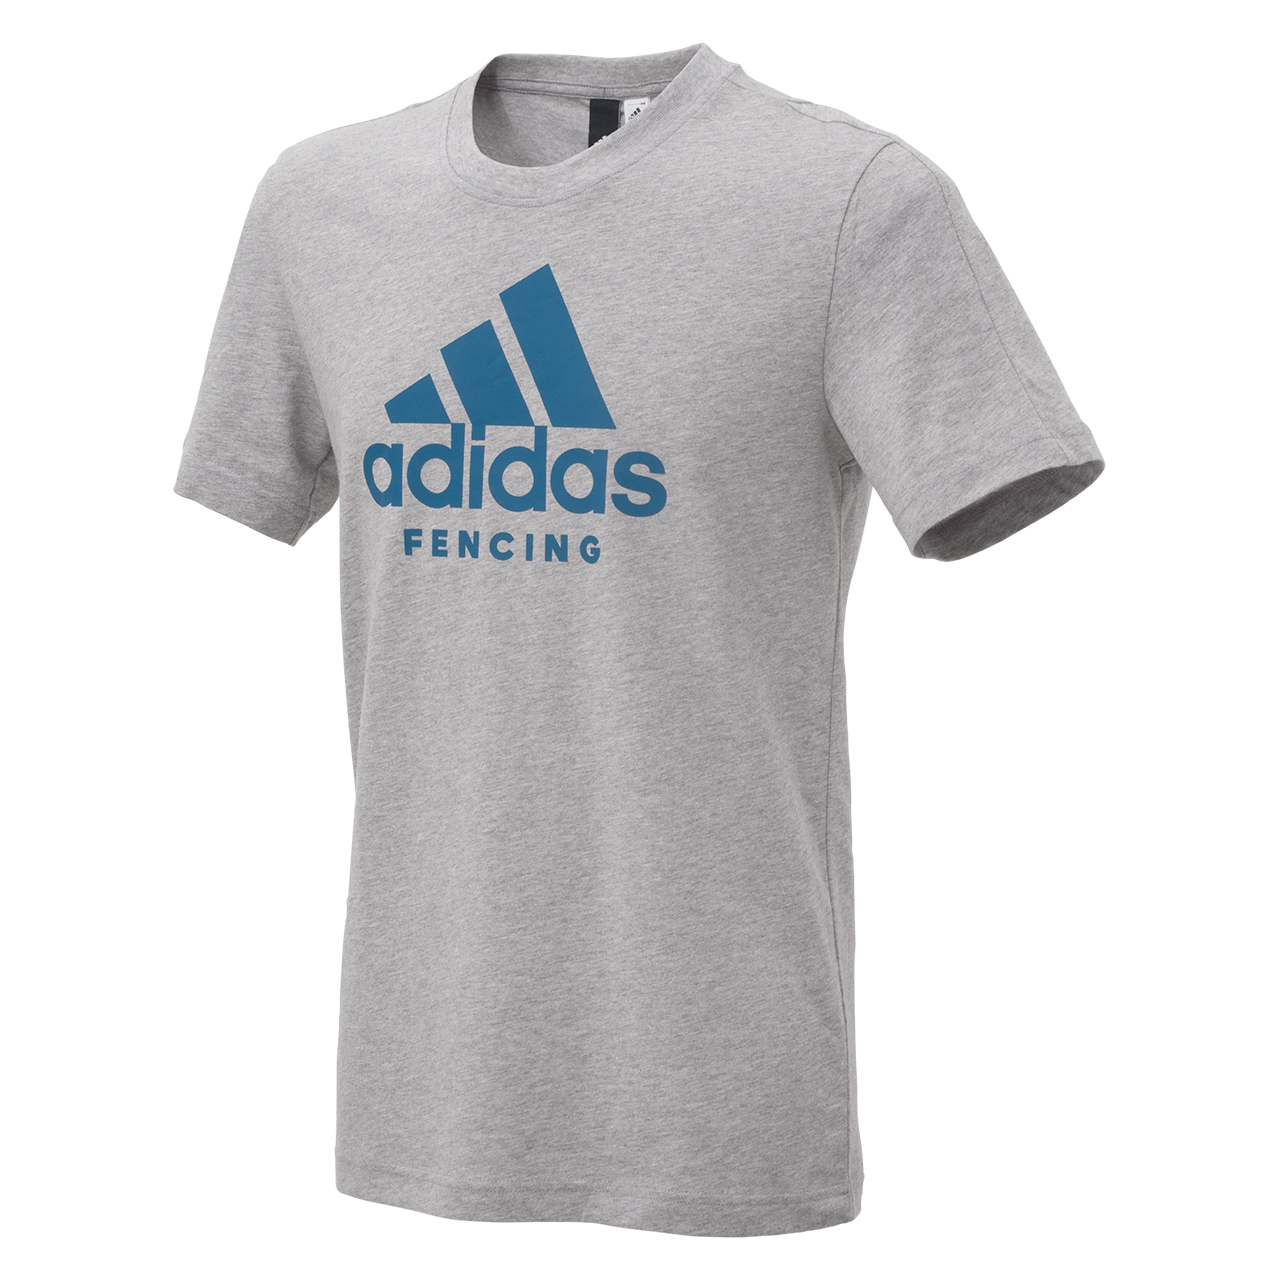 adidas T-shirt with printed logo, grey/petrol